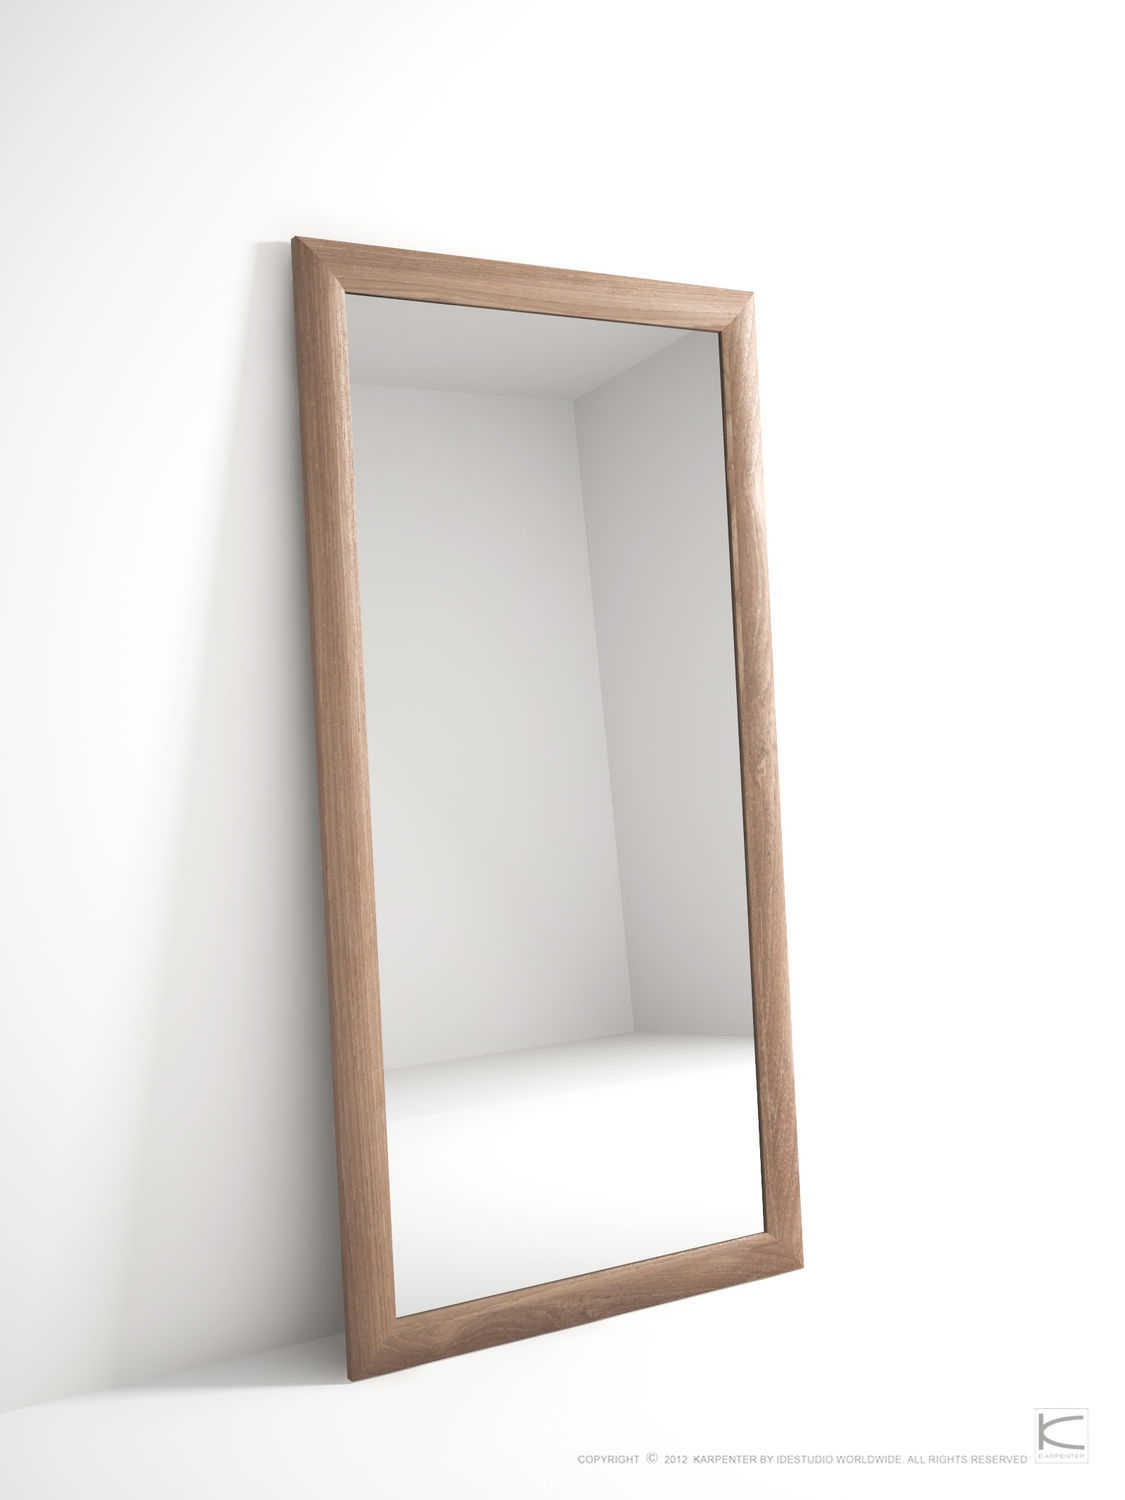 Free Standing Mirror Contemporary Rectangular Oak Vi40 Intended For Vintage Free Standing Mirrors (Image 8 of 15)